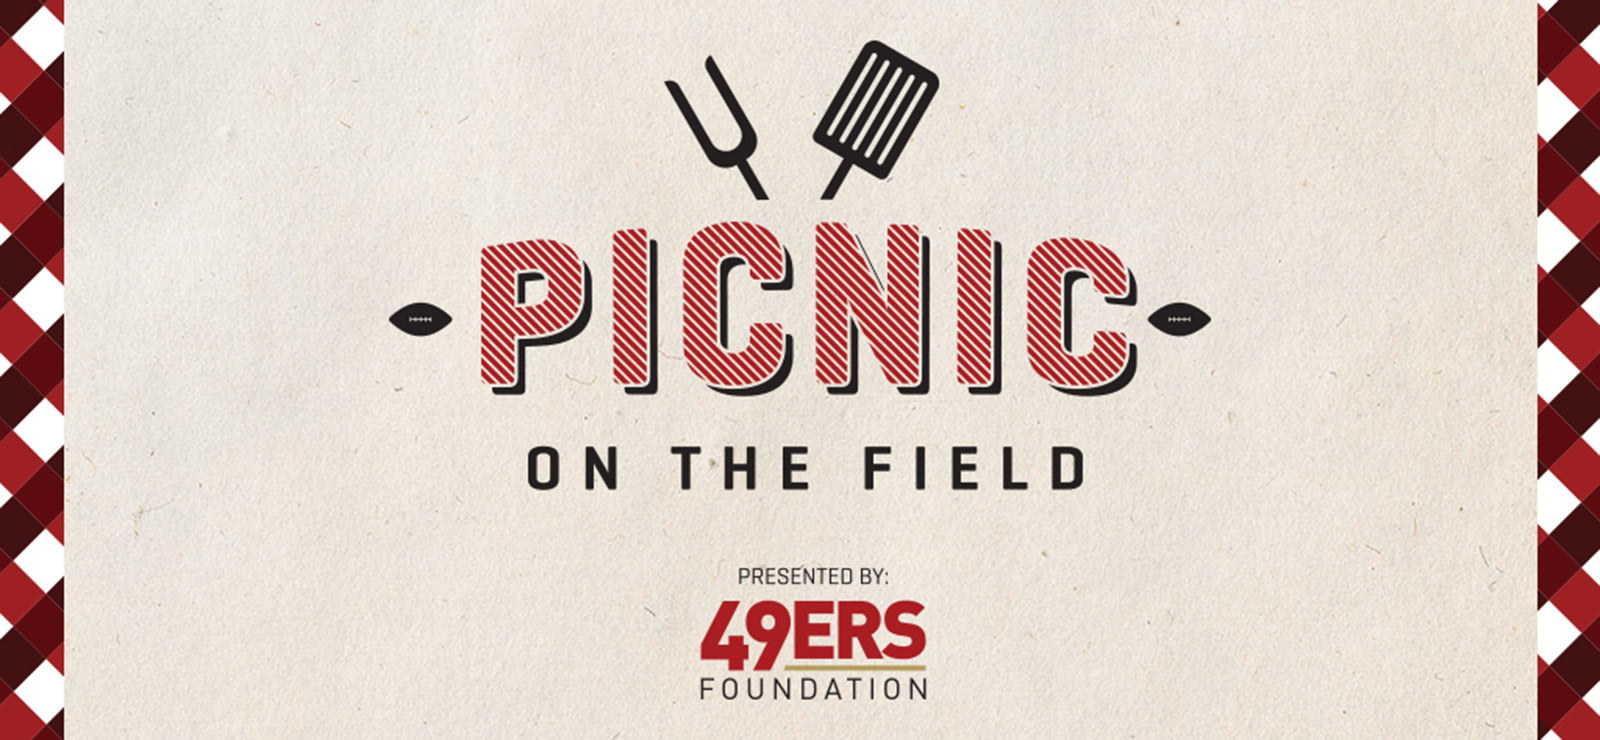 Stay Tuned for 2019 Picnic on the Field Information